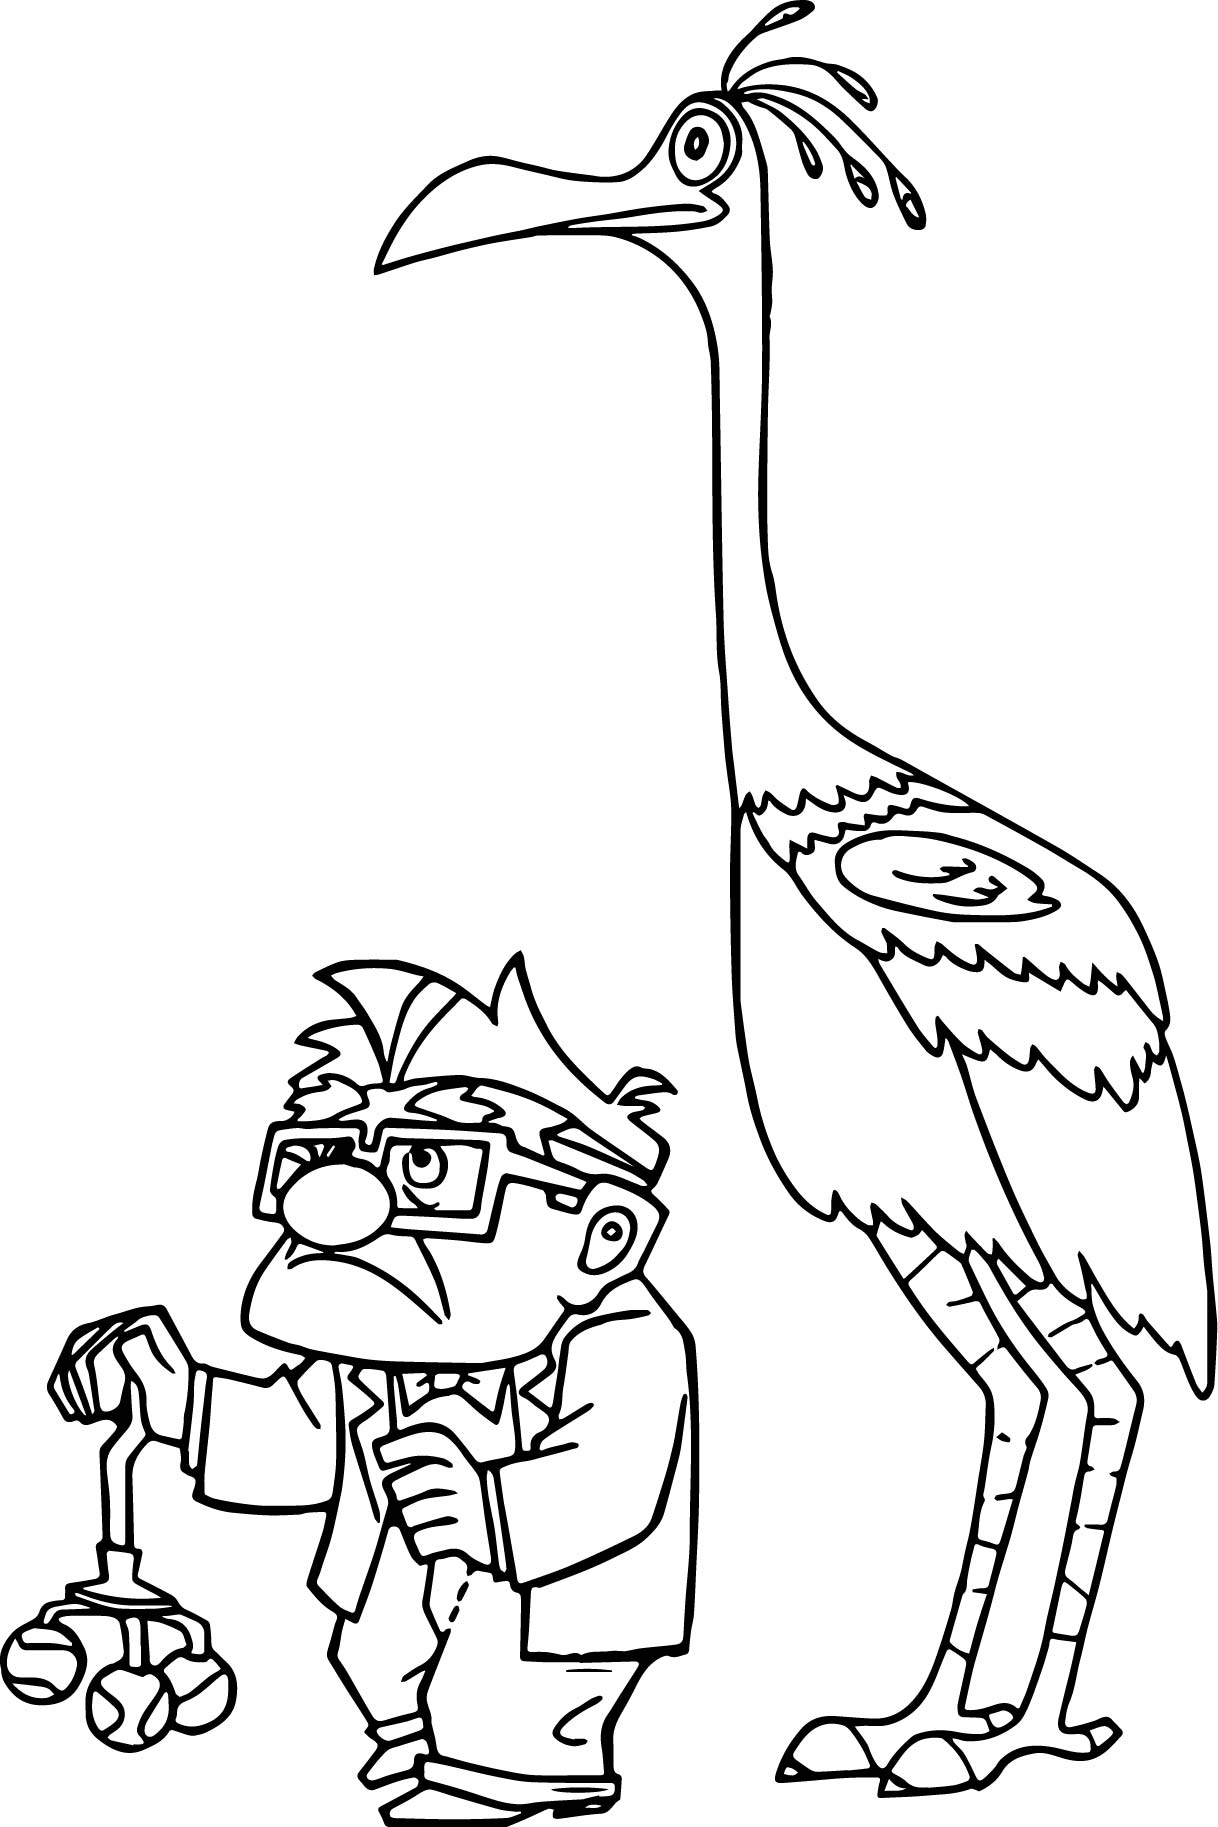 pixar up house coloring pages free download httpwwwsupercoloringcompageshouse on coloring pixar pages house up